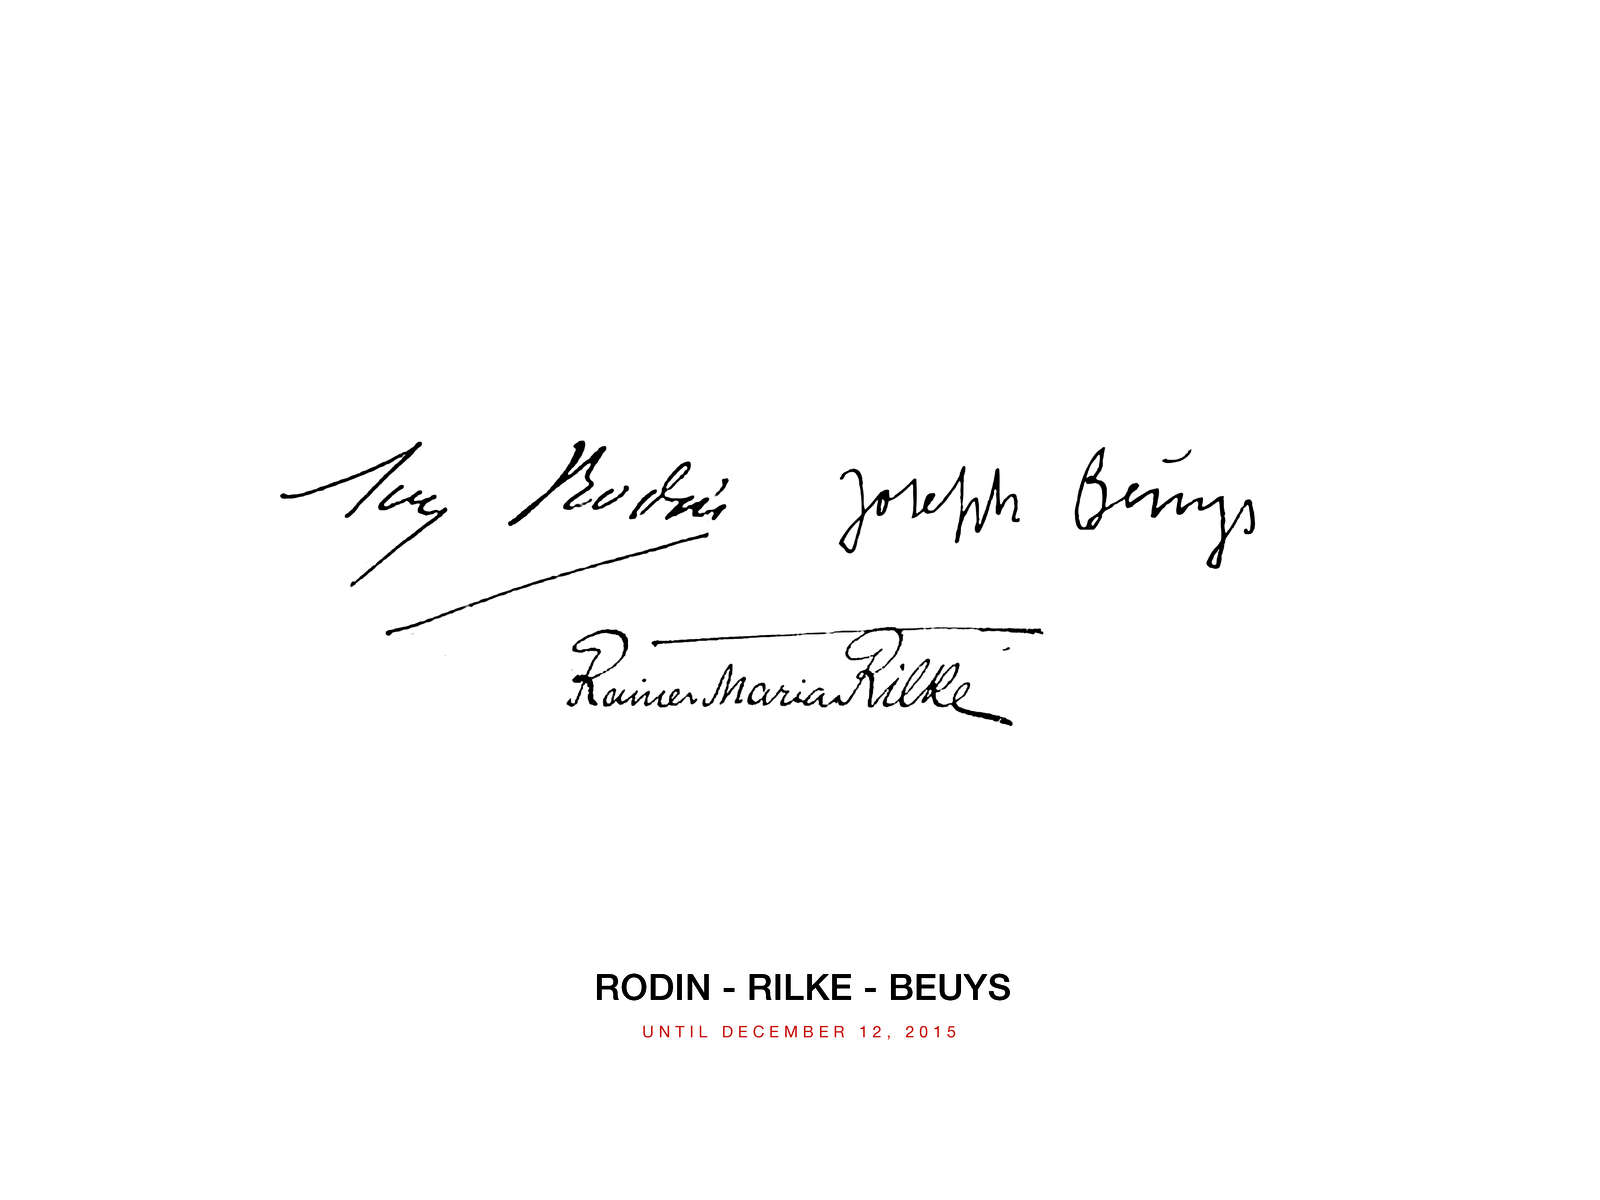 AM_RODIN-RILKE-BEUYS_1600x1200-01